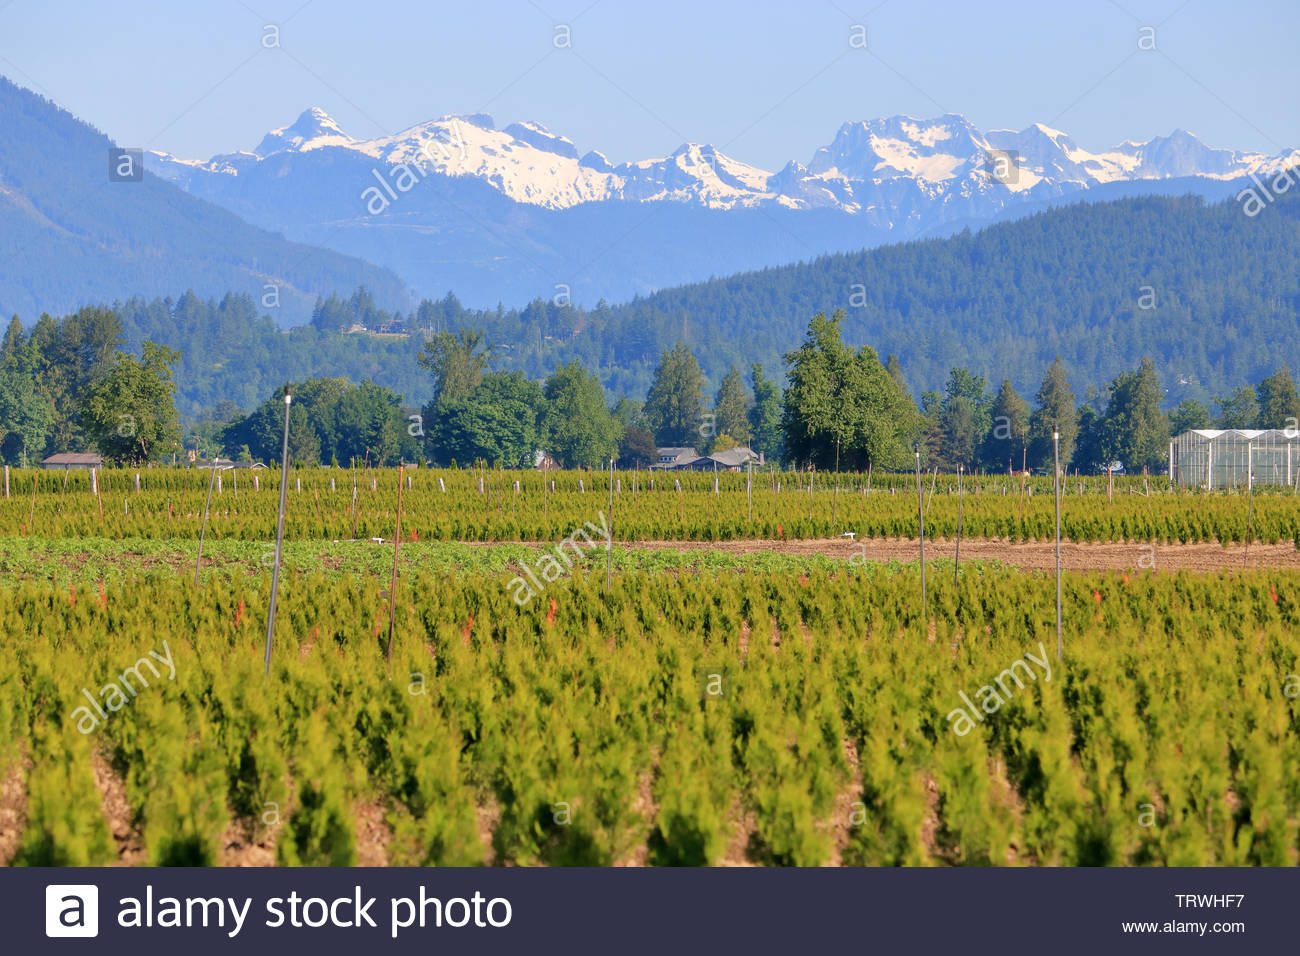 The Northshore Mountain range in southern BC, Canada towers over the Fraser Valley where agricultural land is used for both agricultural and commercia - Stock Image